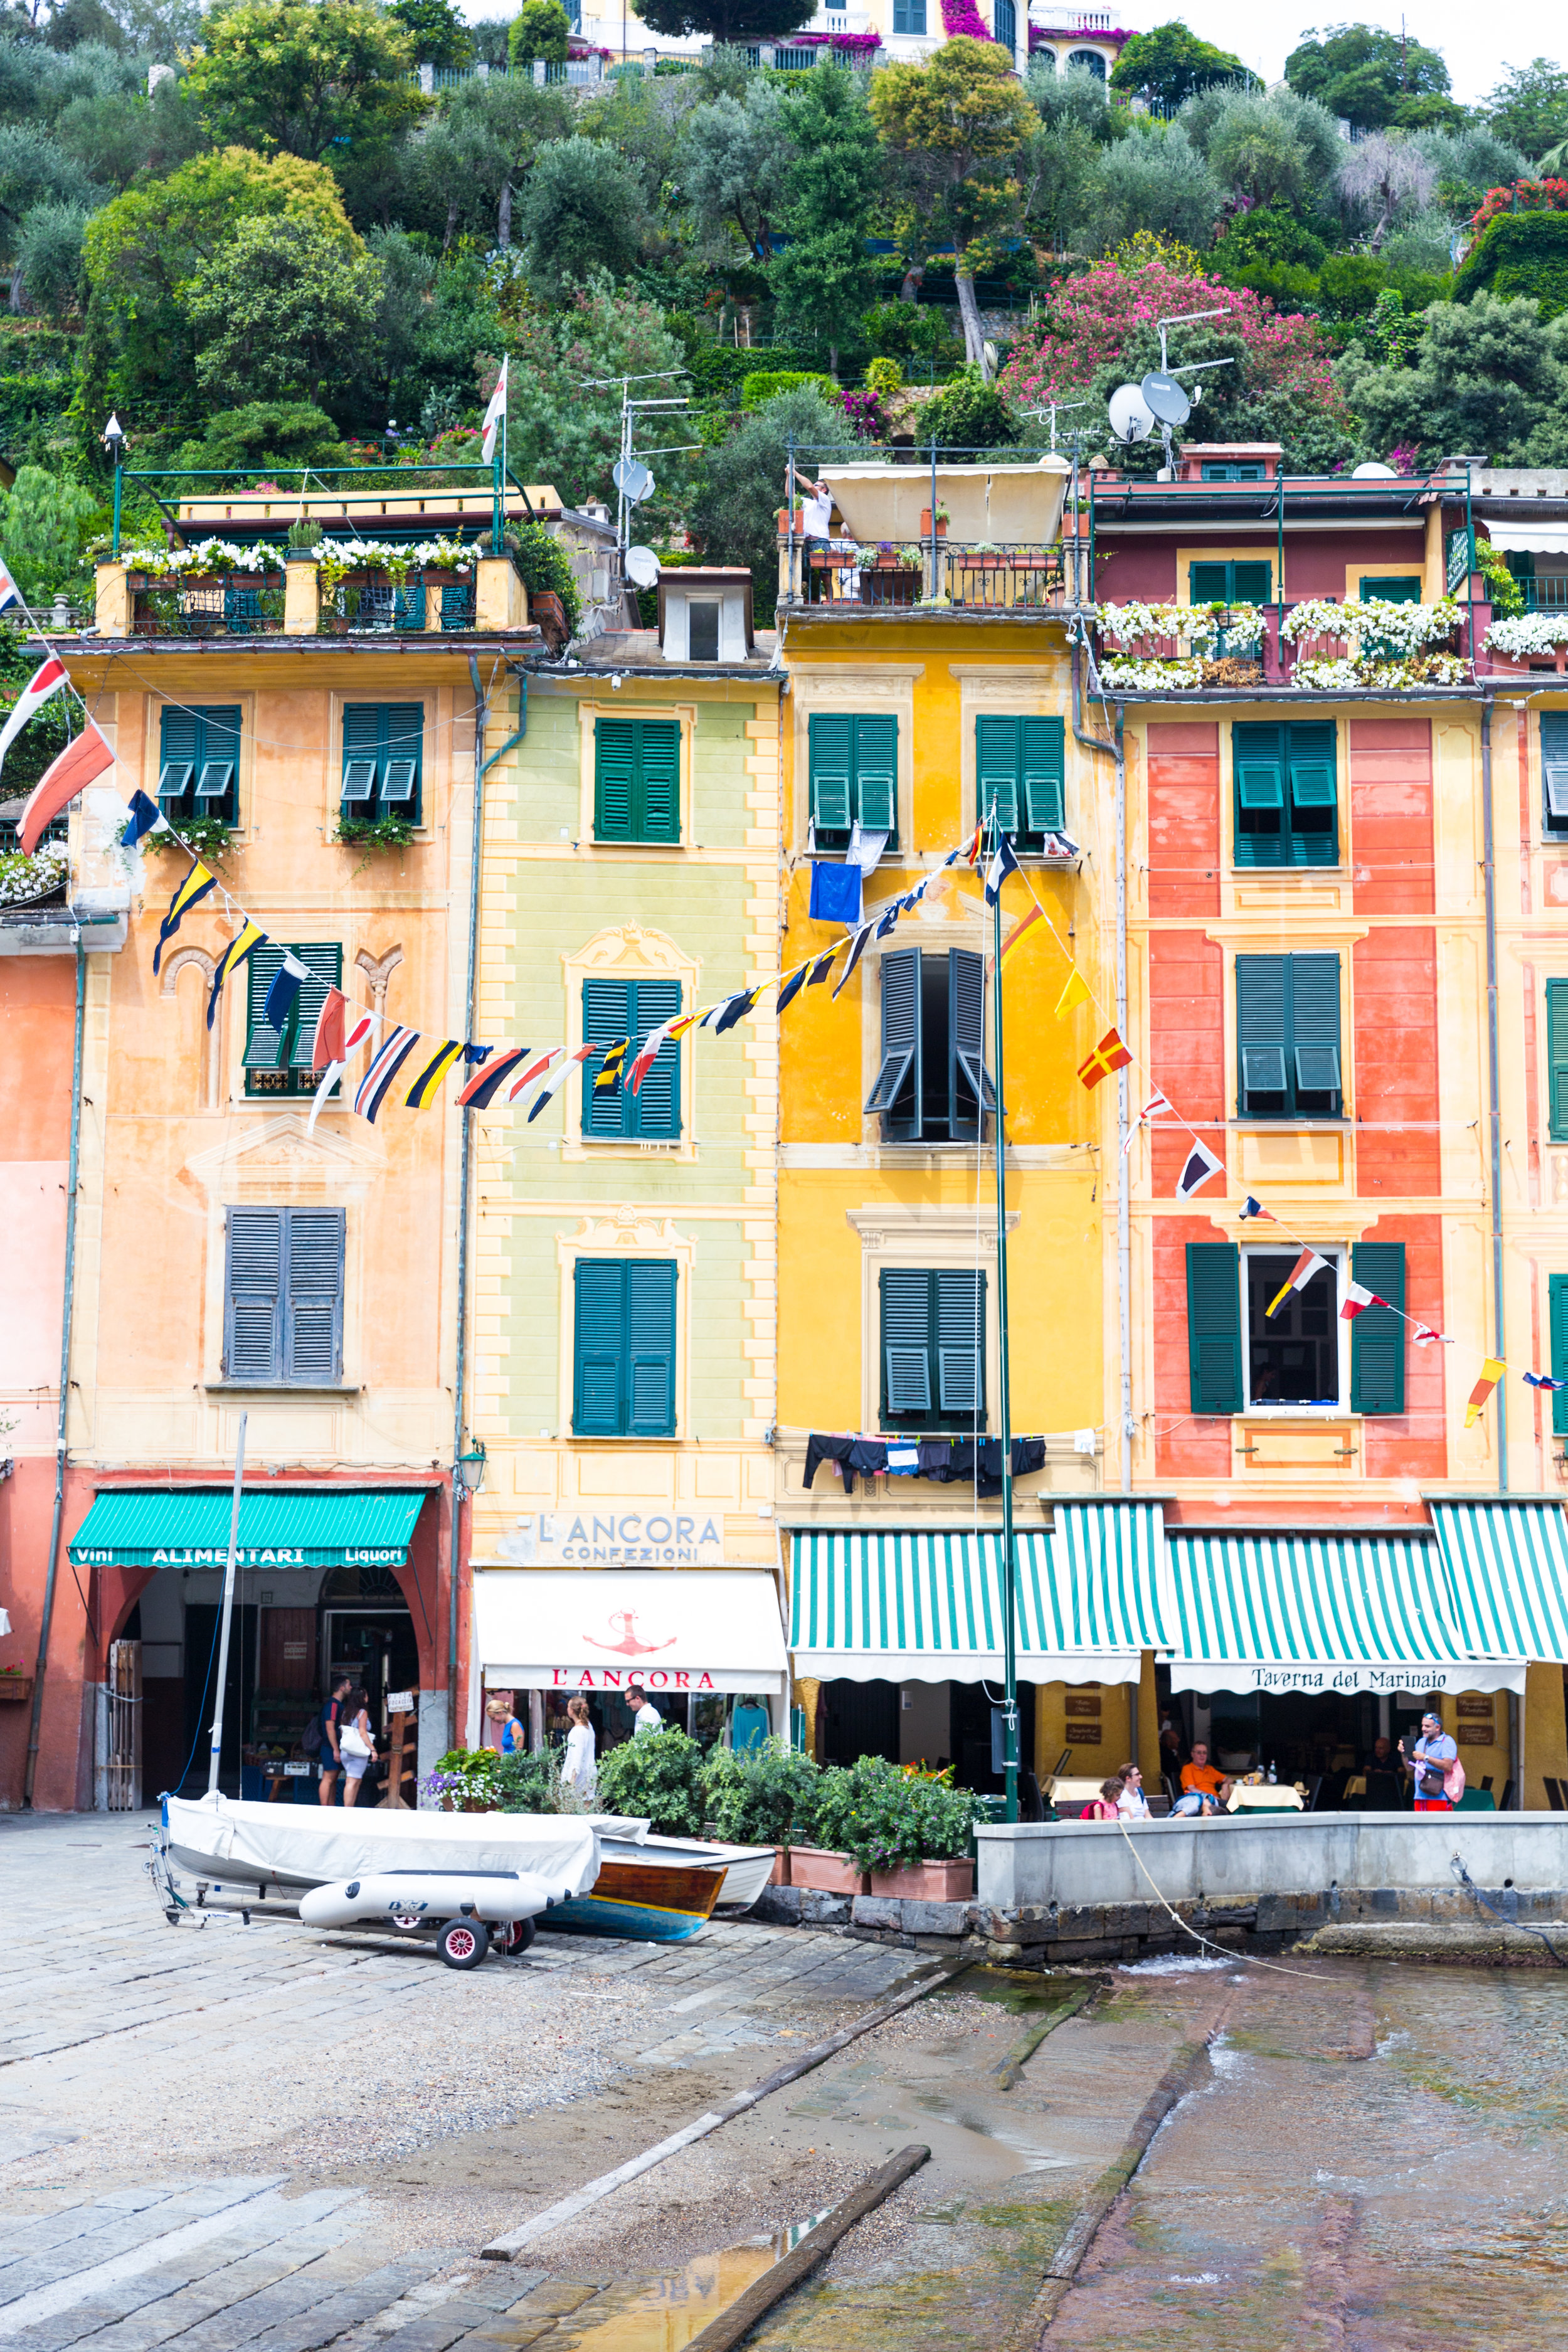 Italy Liguria Portofino Summer Travel-2.jpg